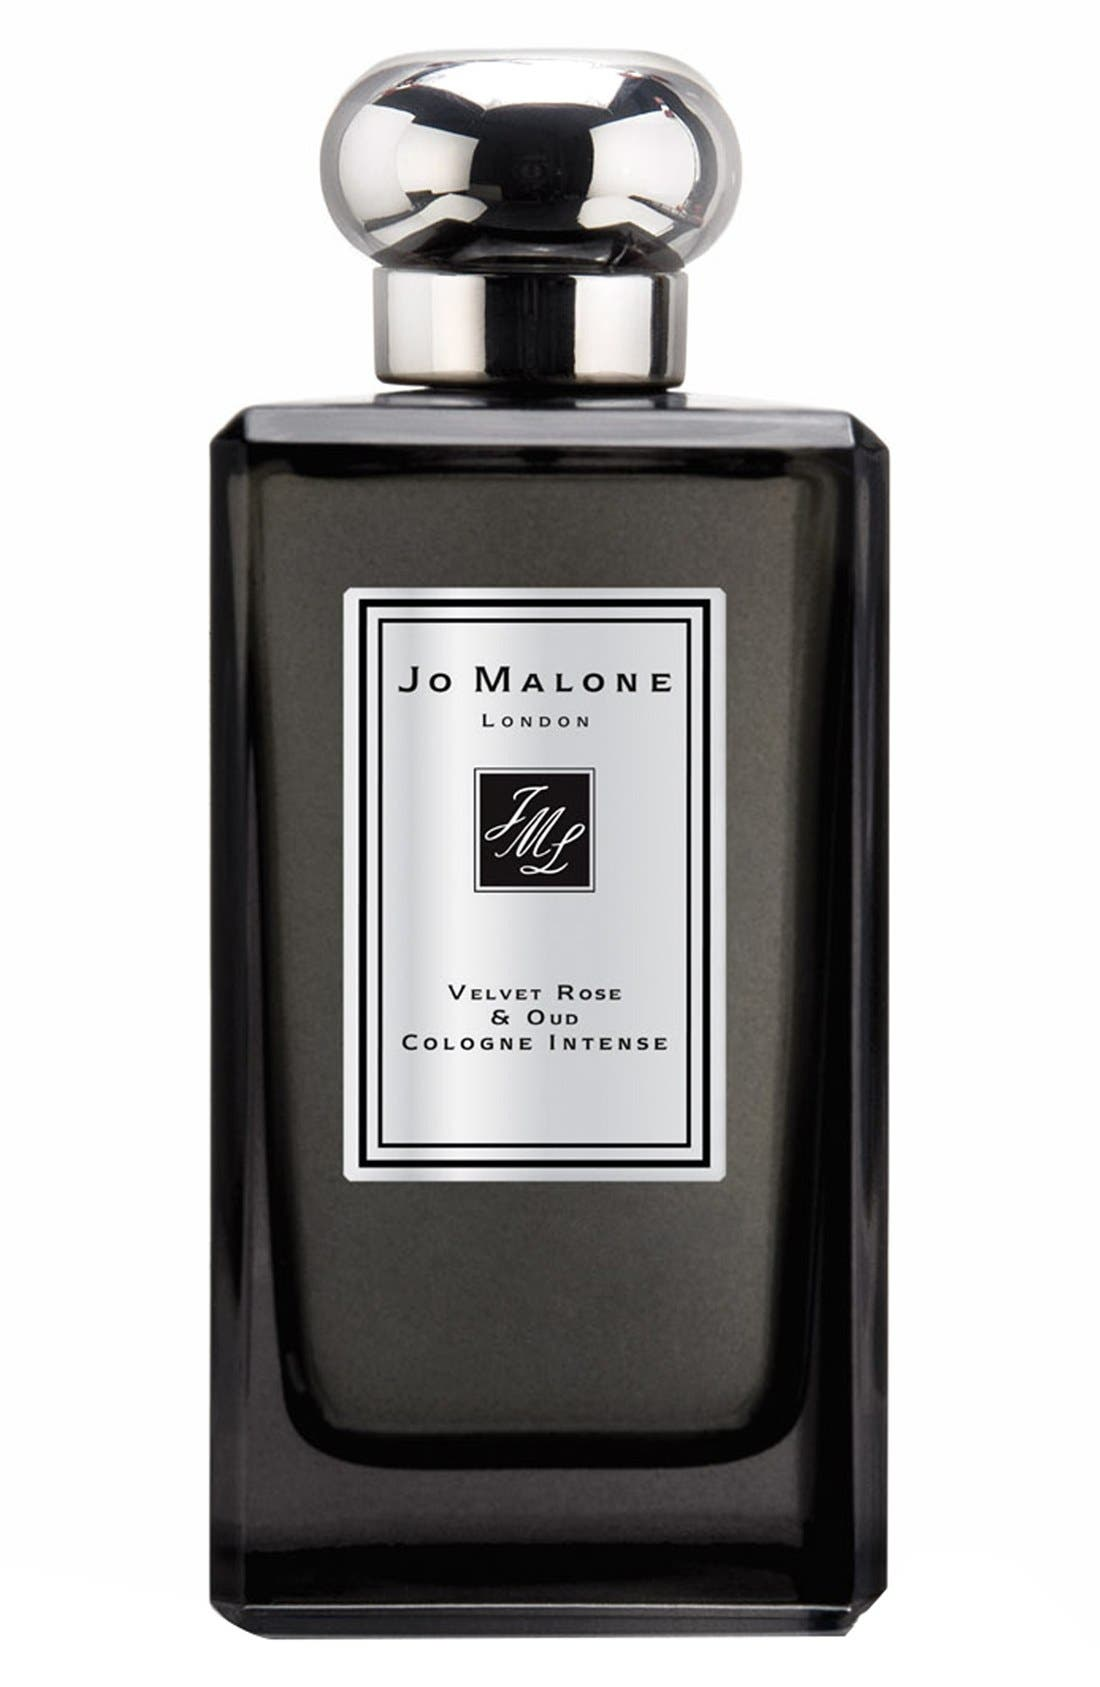 Jo Malone London™ 'Velvet Rose & Oud' Cologne Intense